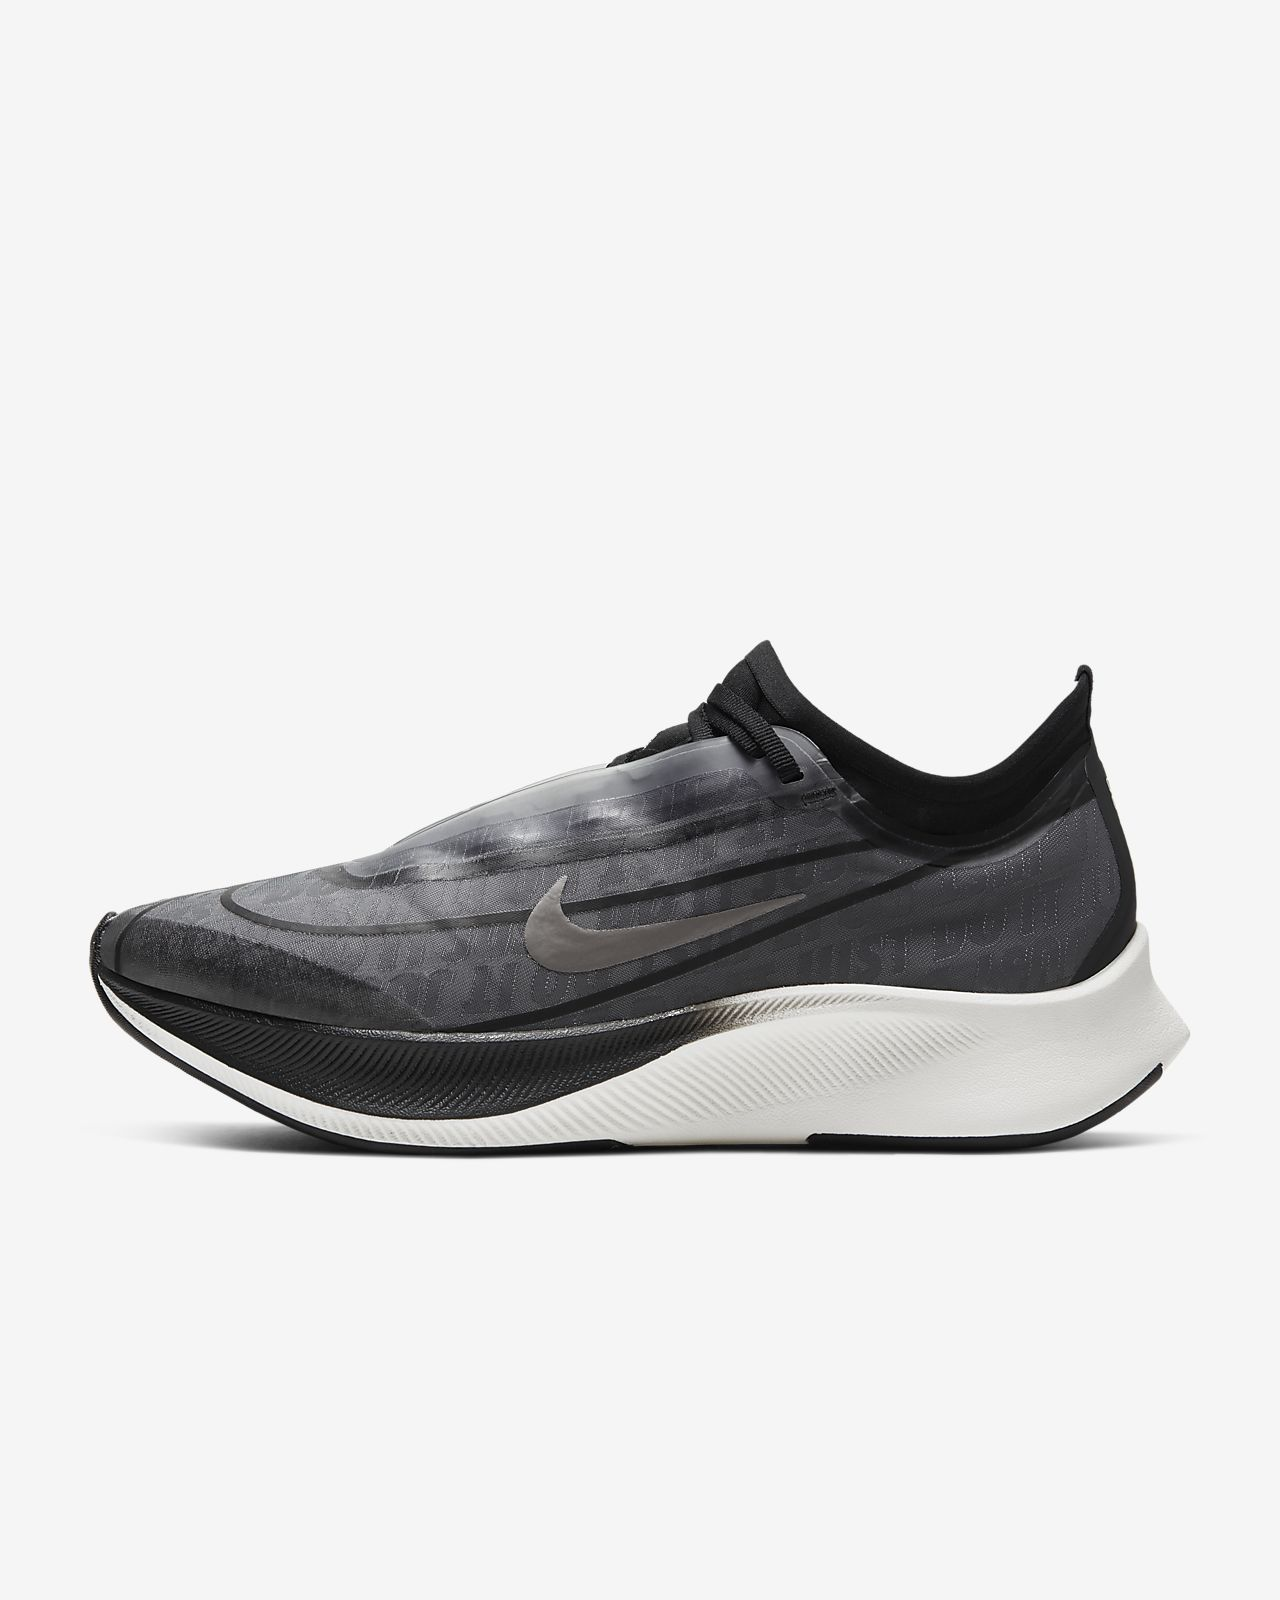 Sapatilhas de running Nike Zoom Fly 3 para mulher